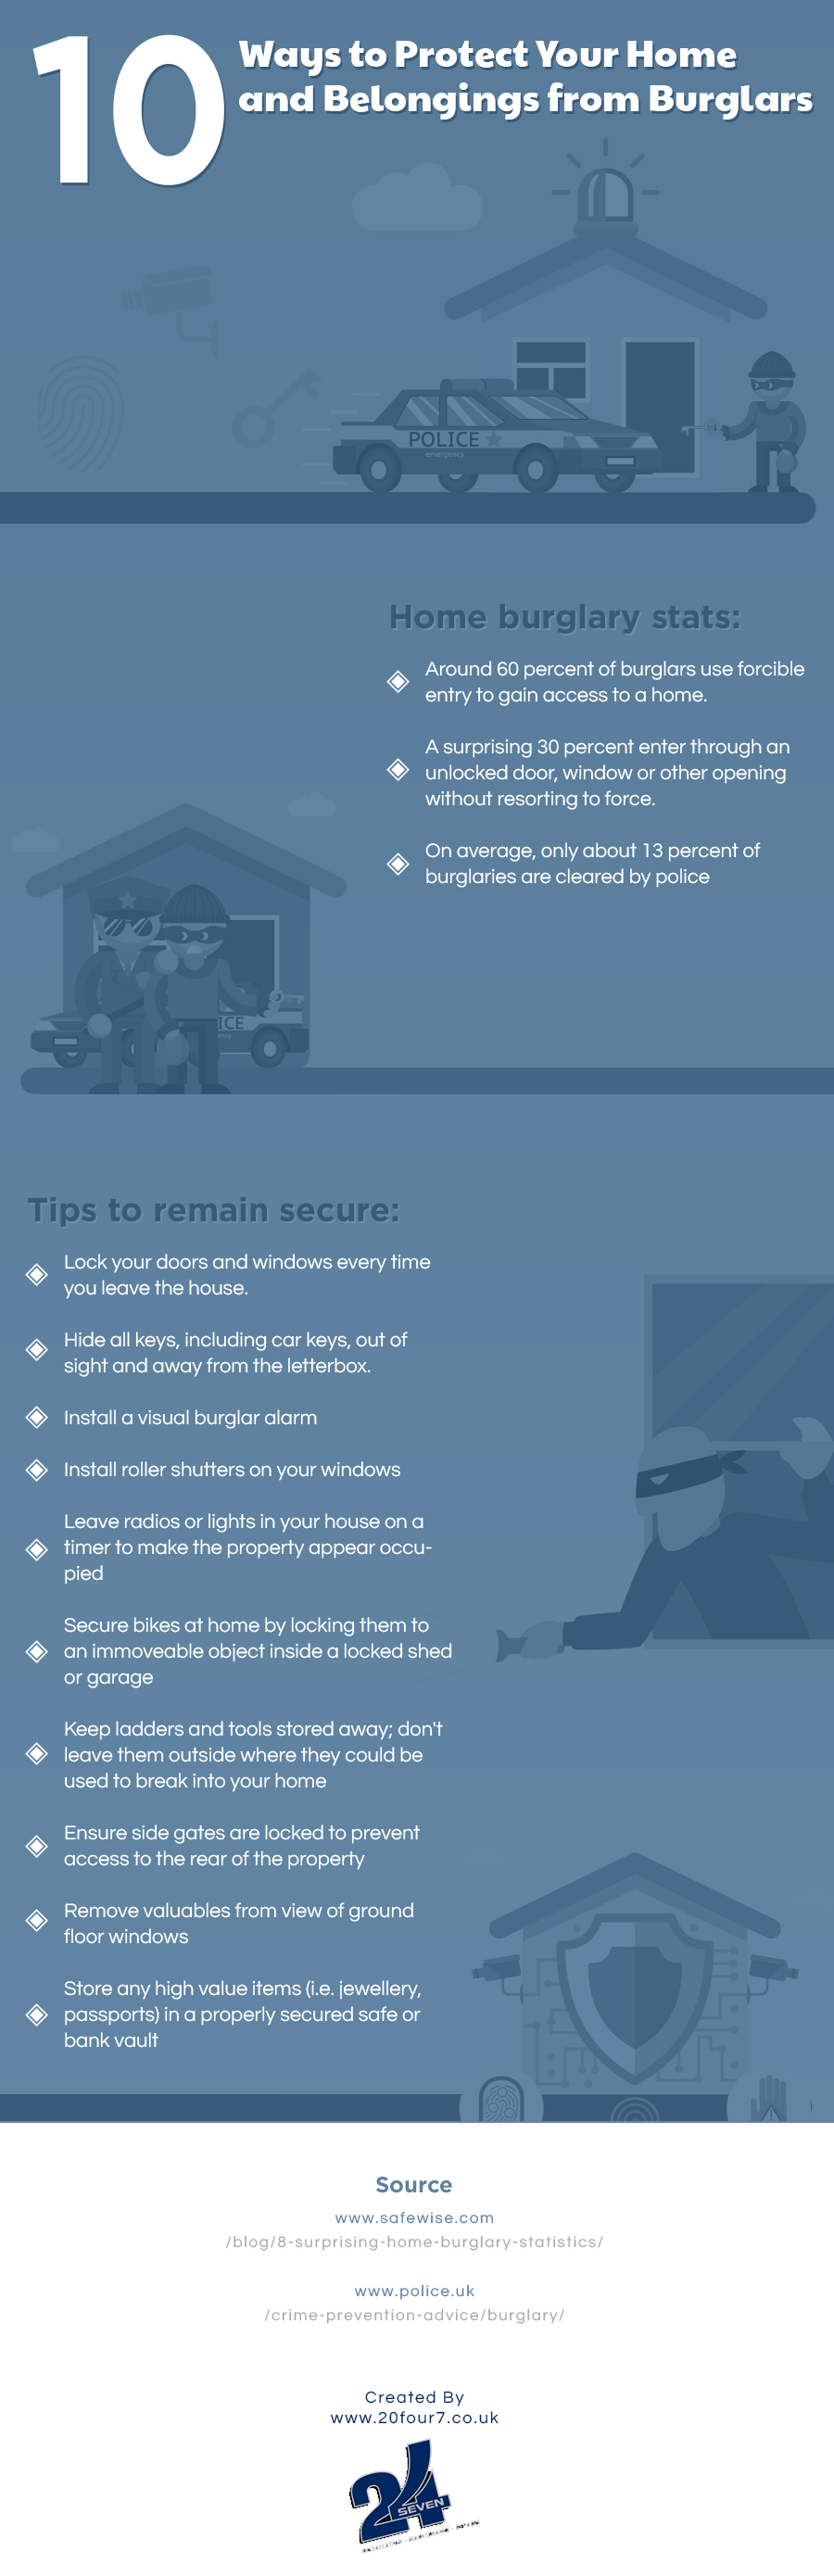 10 Ways To Protect Your Home and Belongings from Burglars